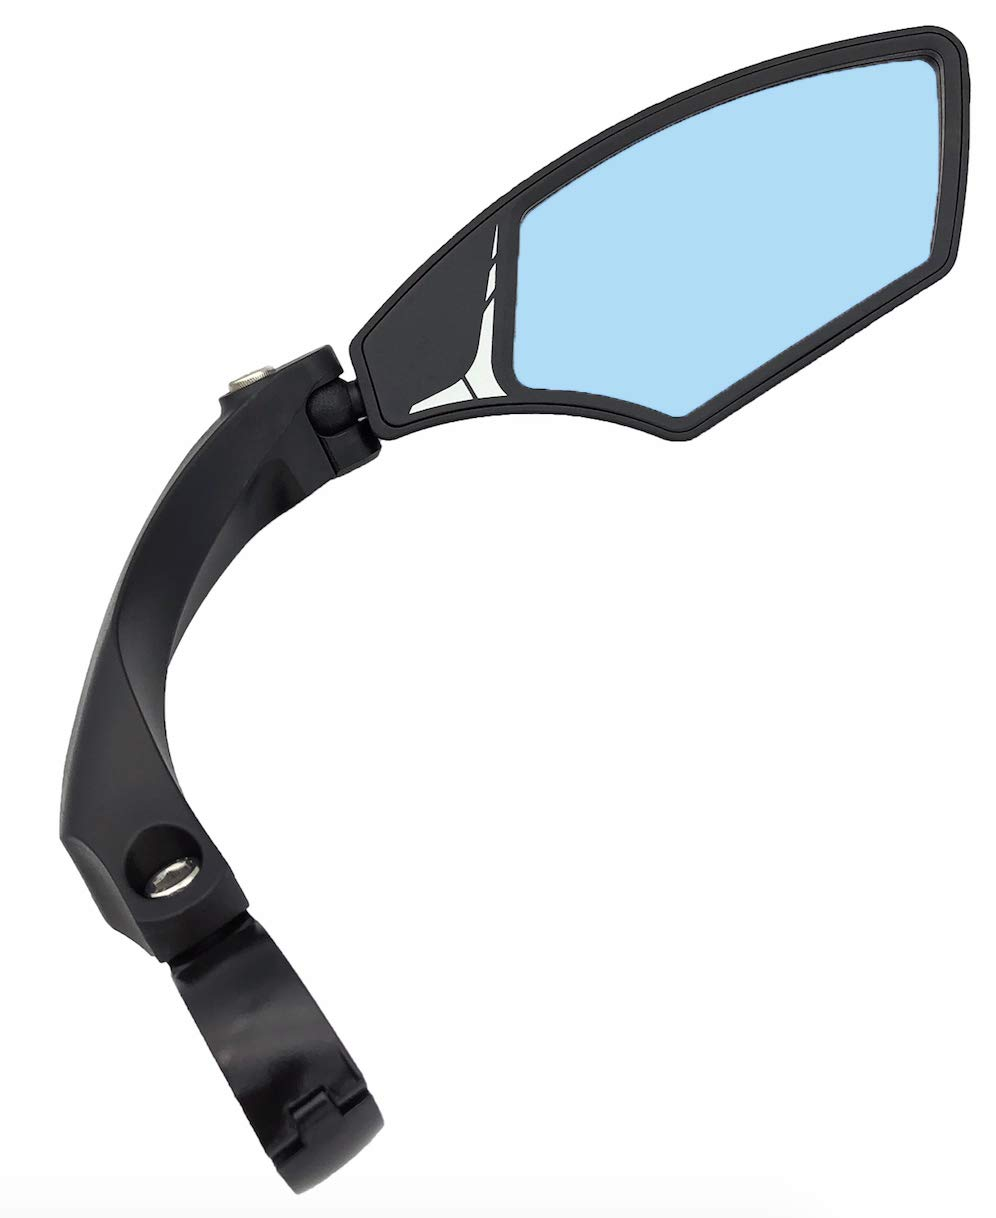 Hafny New Handlebar Bike Mirror, HD,Blast-Resistant, Glass Lens, HF-MR095 (Anti-Glare Right)